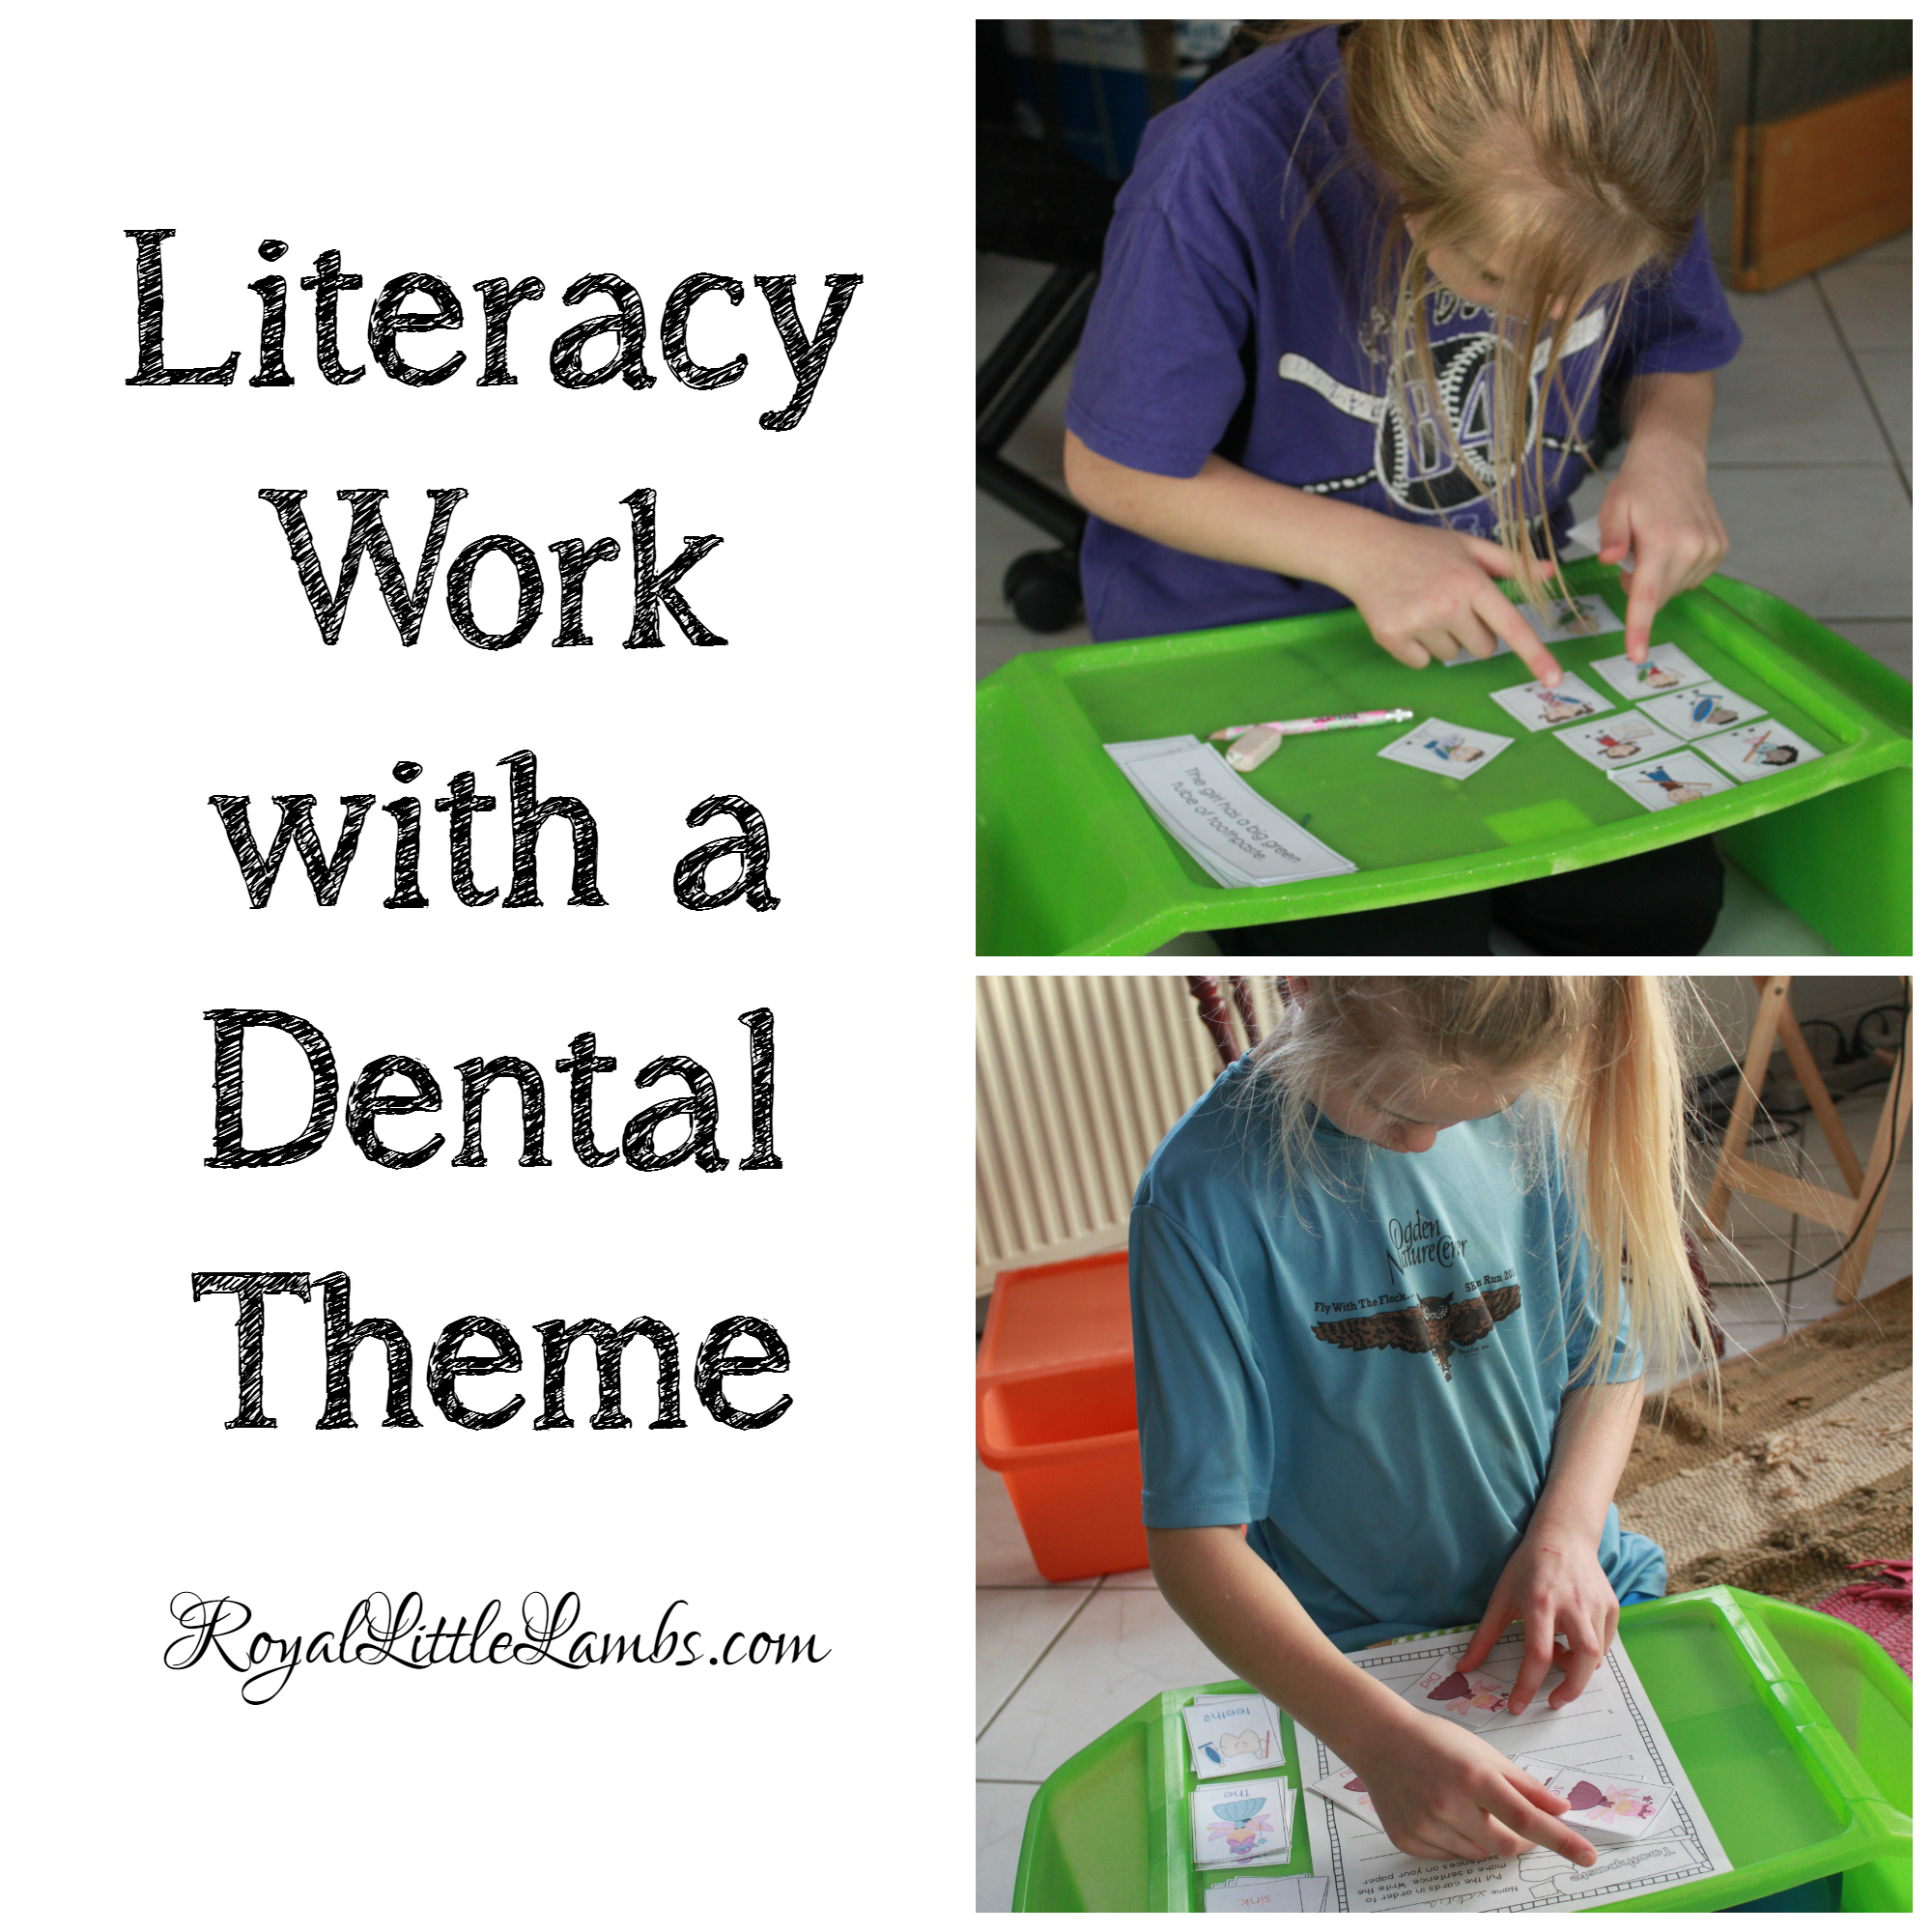 Literacy Work with a Dental Theme